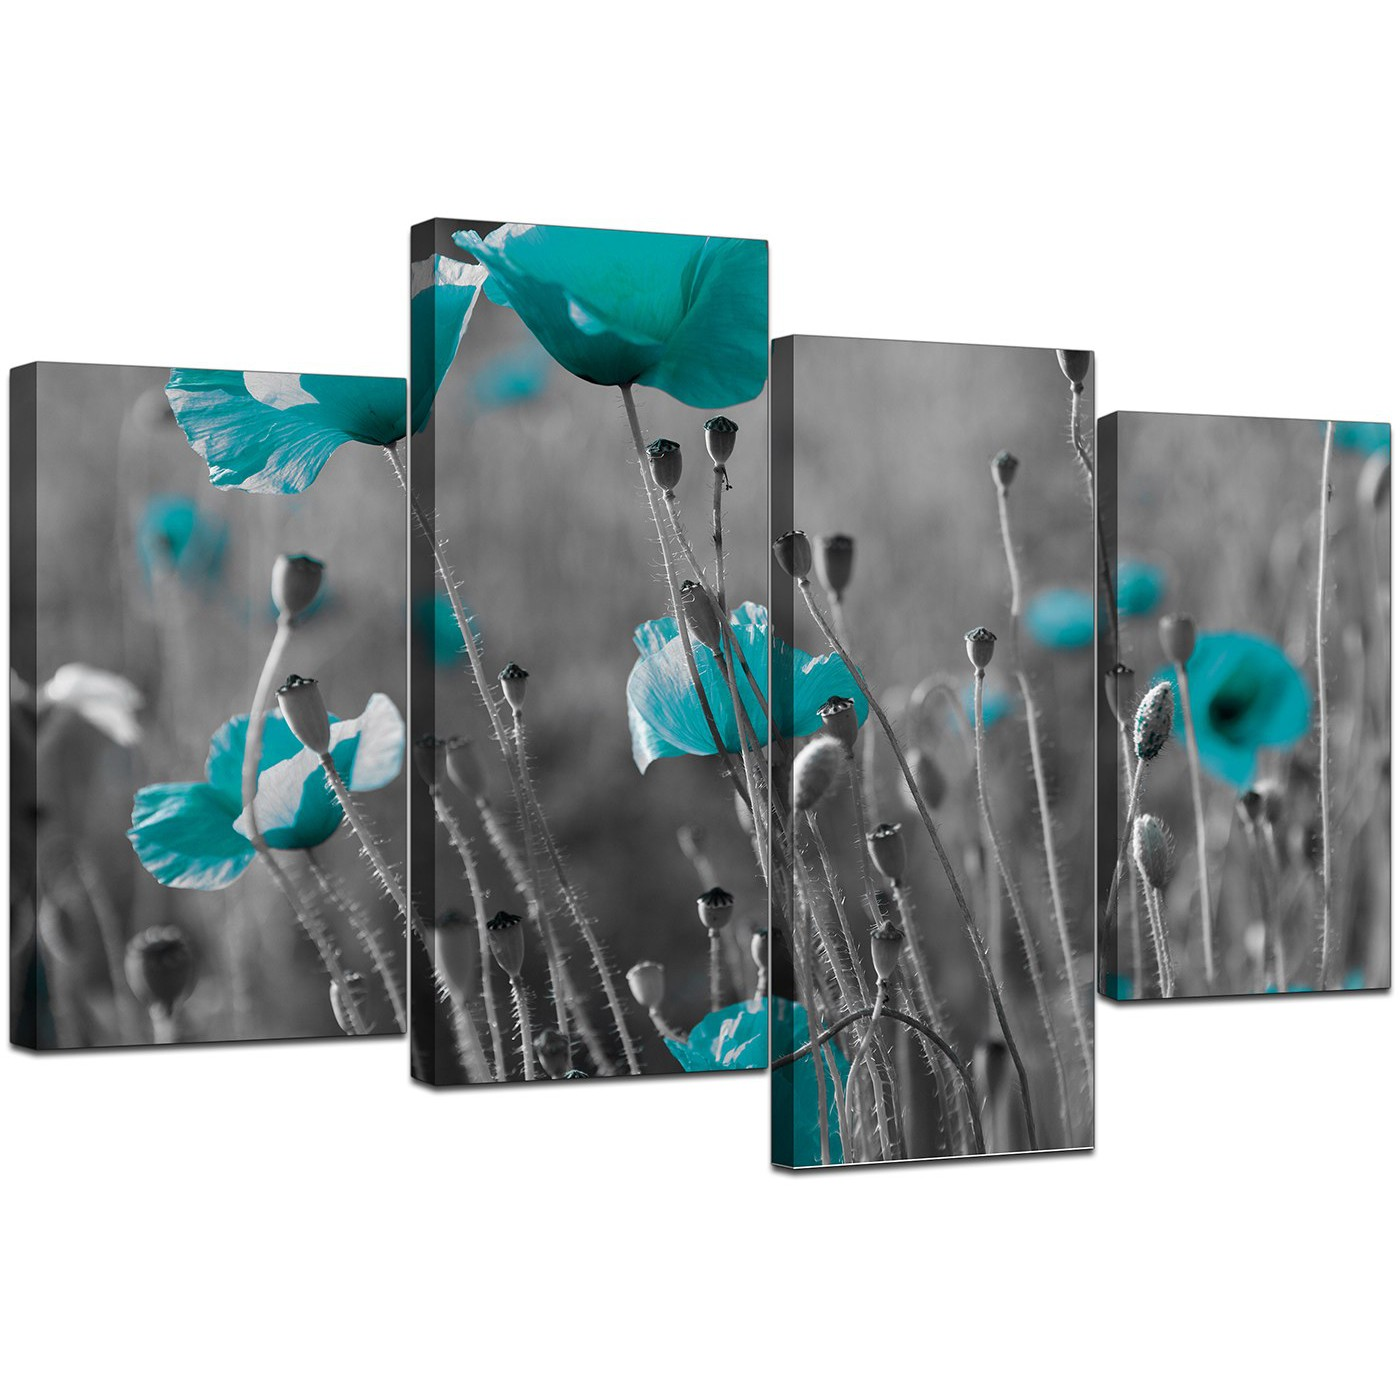 Captivating Display Gallery Item 5; Four Panel Set Of Living Room Teal Canvas Picture  Display Gallery Item 6 Part 31